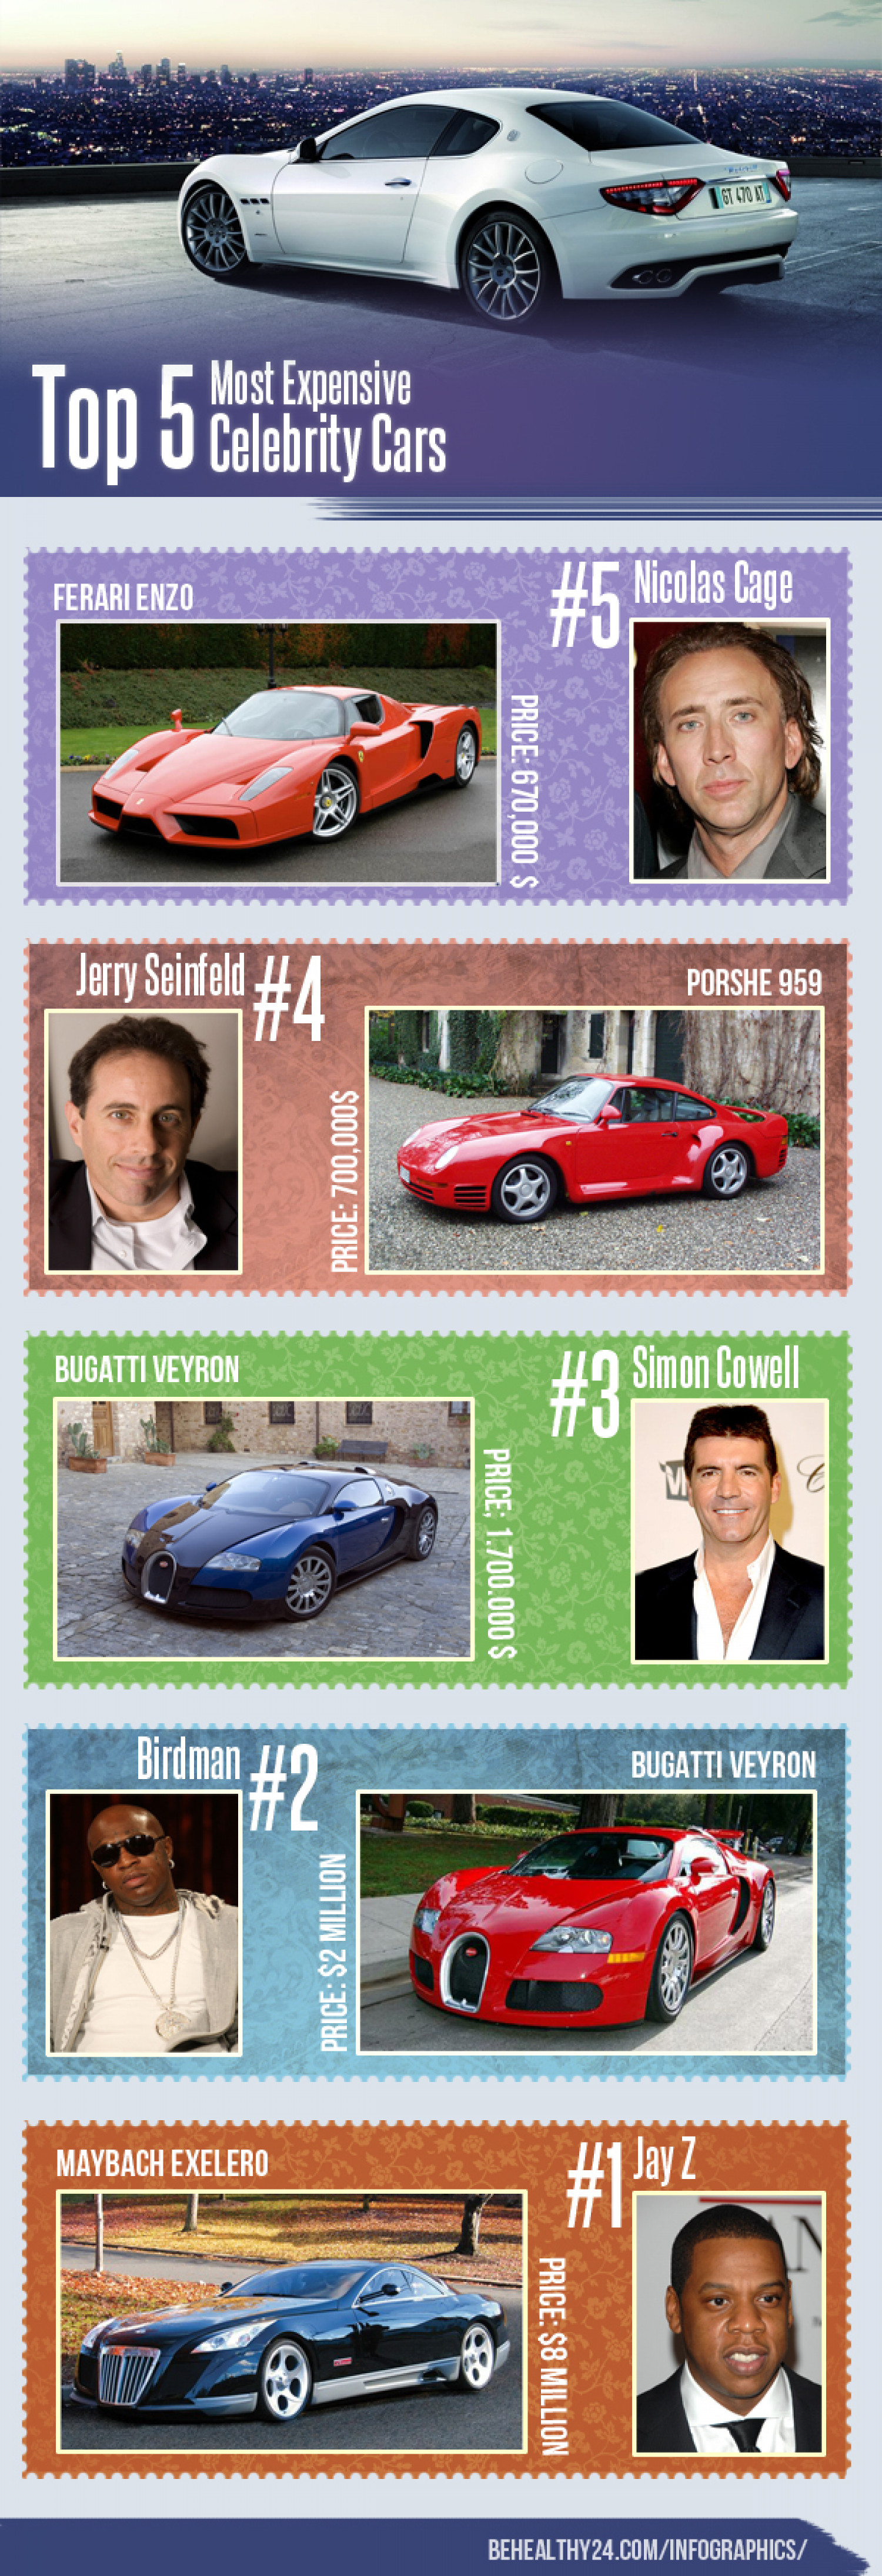 Top 5 Most Expensive Celebrity Cars Infographic